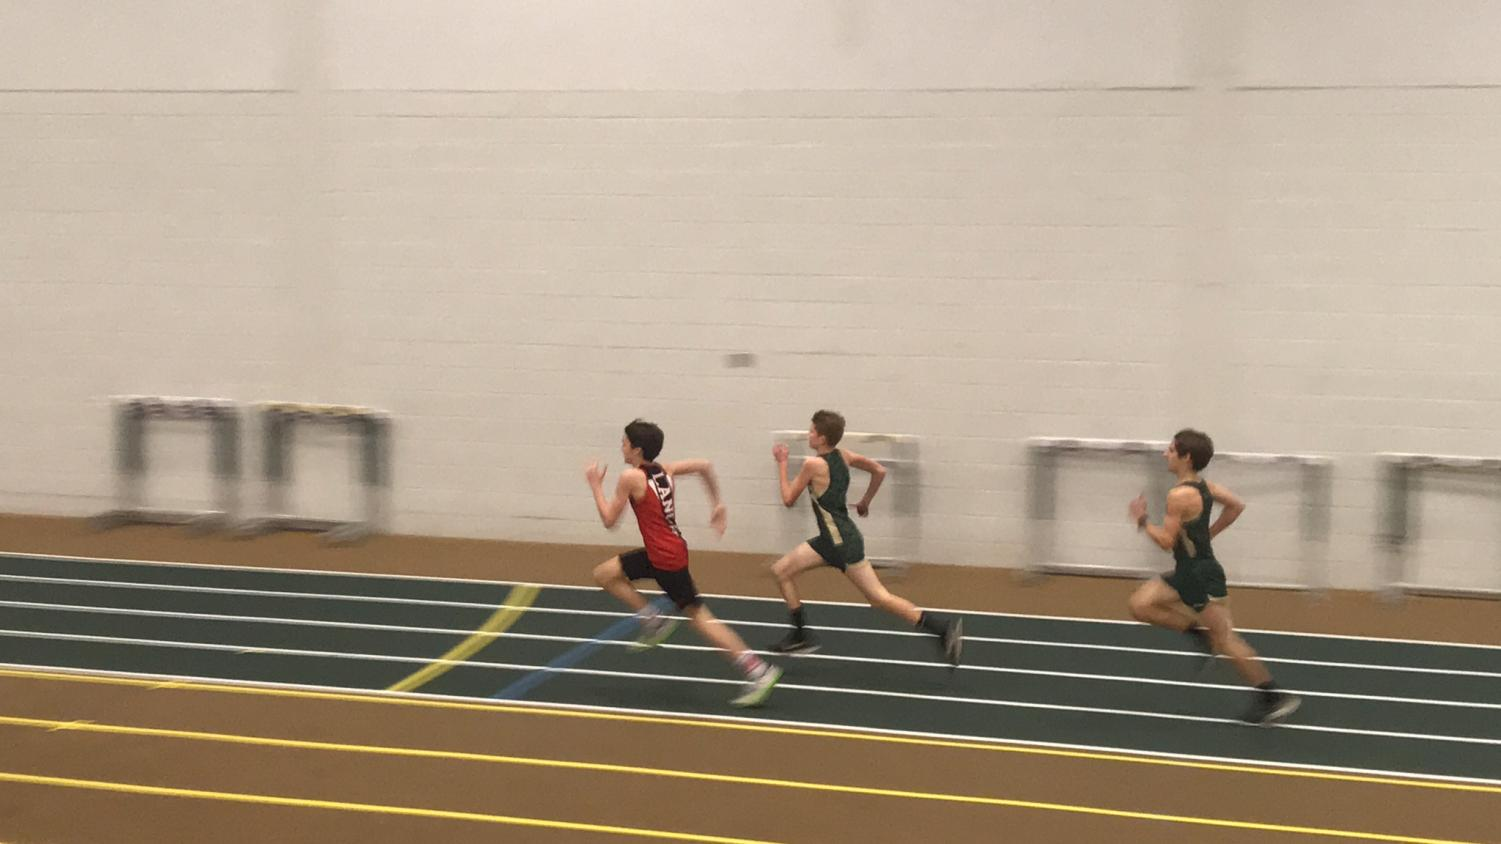 Freshman Brad Rose competes against two runners from Century High School in the 800 meter run.